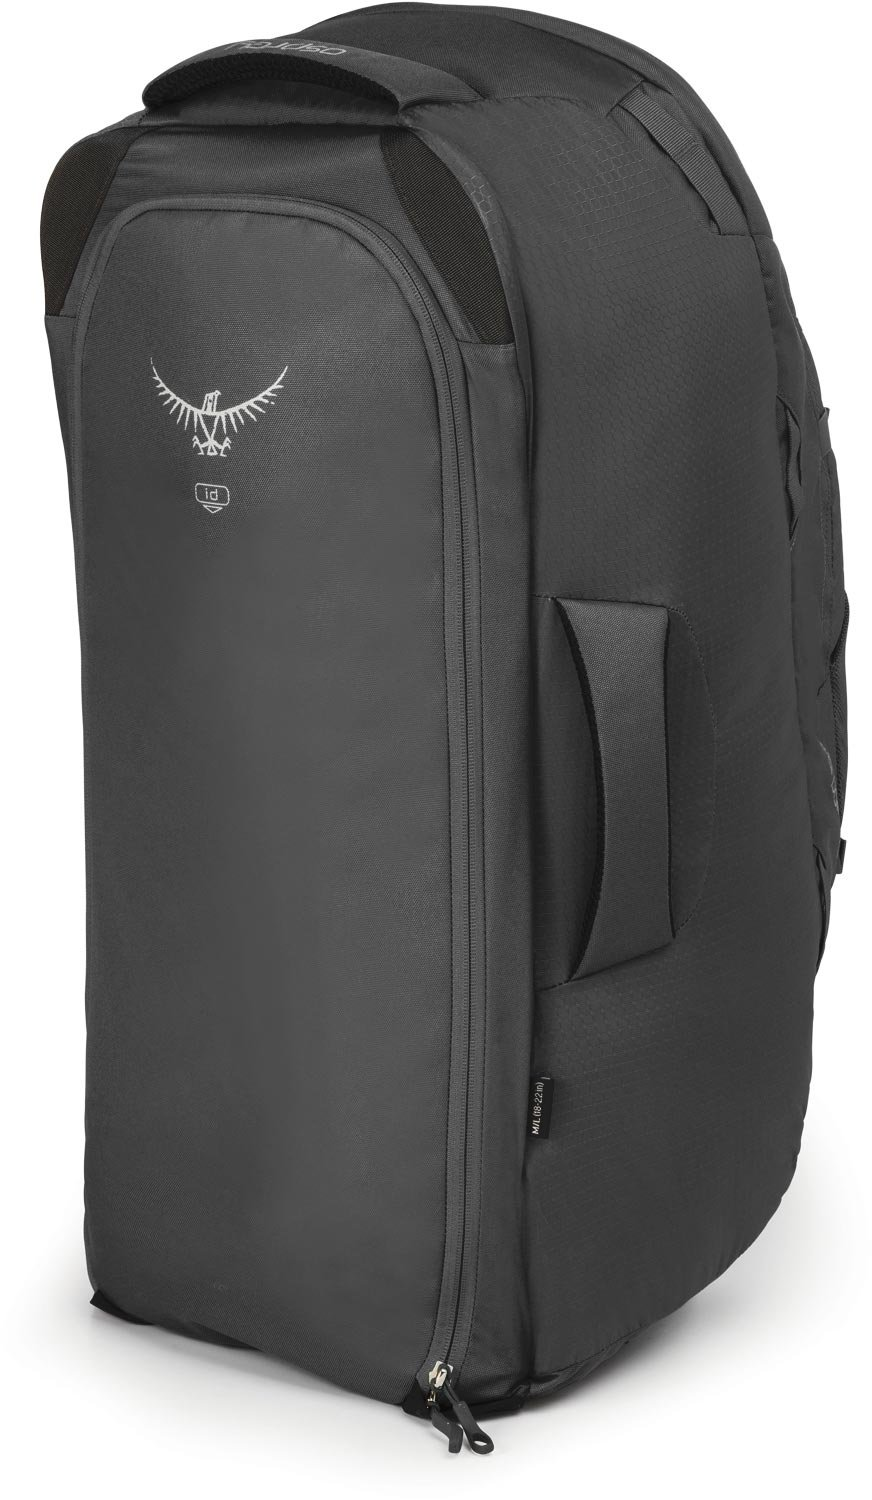 71EGIw1lBqL - Osprey Farpoint 70 Men's Travel Pack